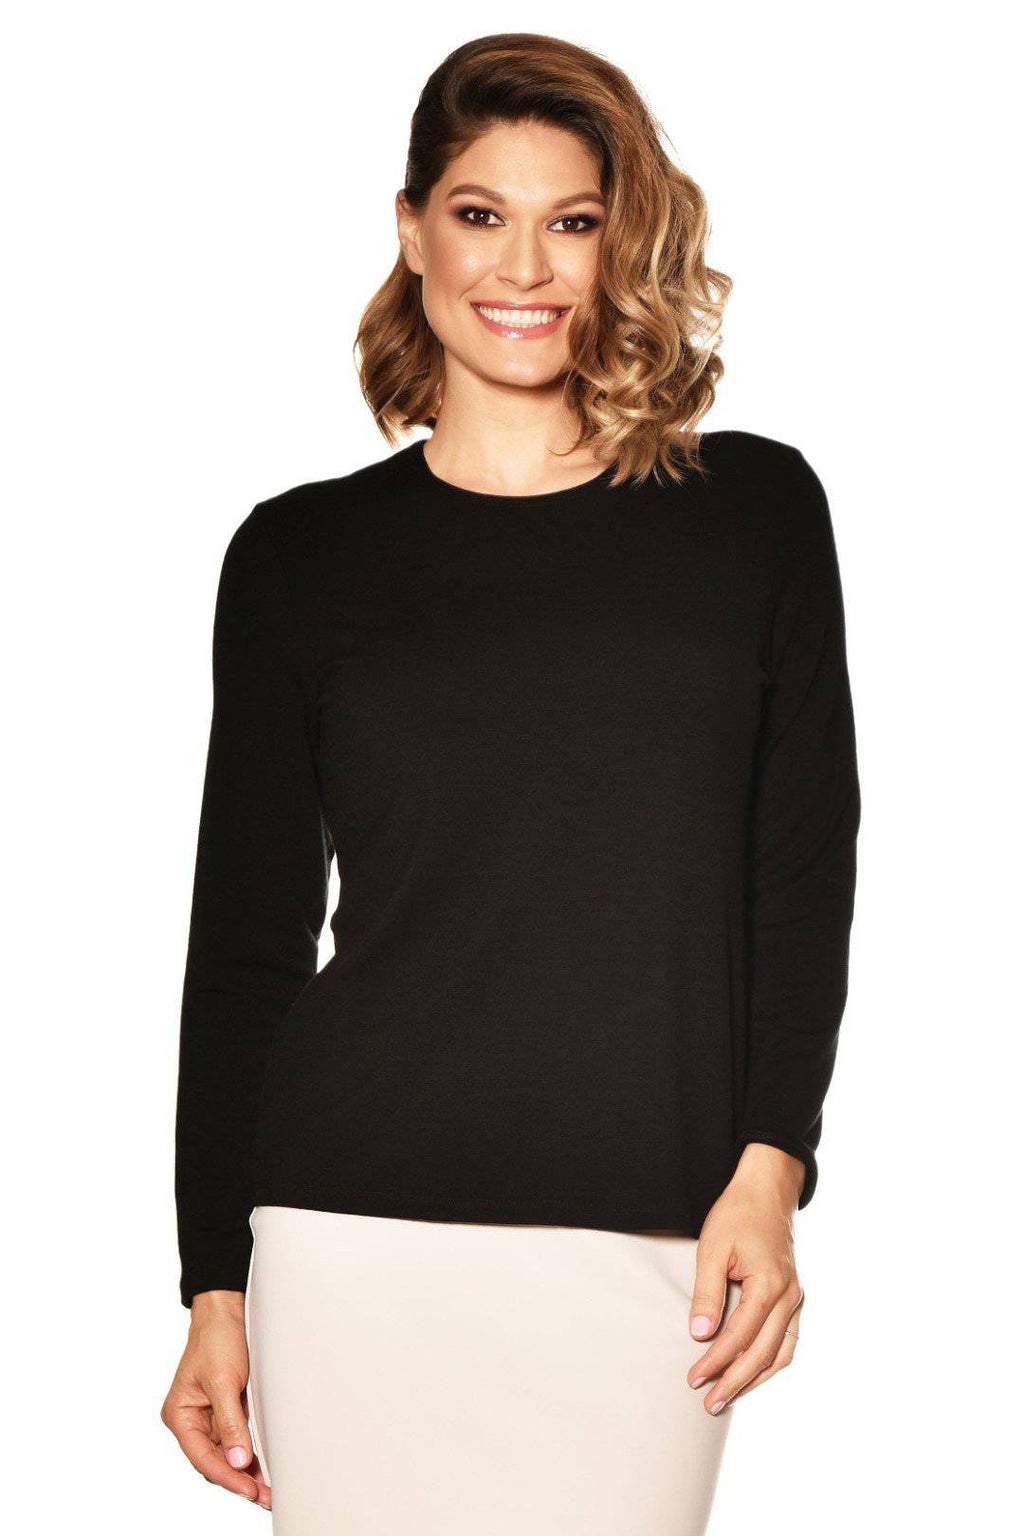 PAULA RYAN ESSENTIALS Easy Fit Long Sleeve Crew Neck Top - Merino - Paula Ryan